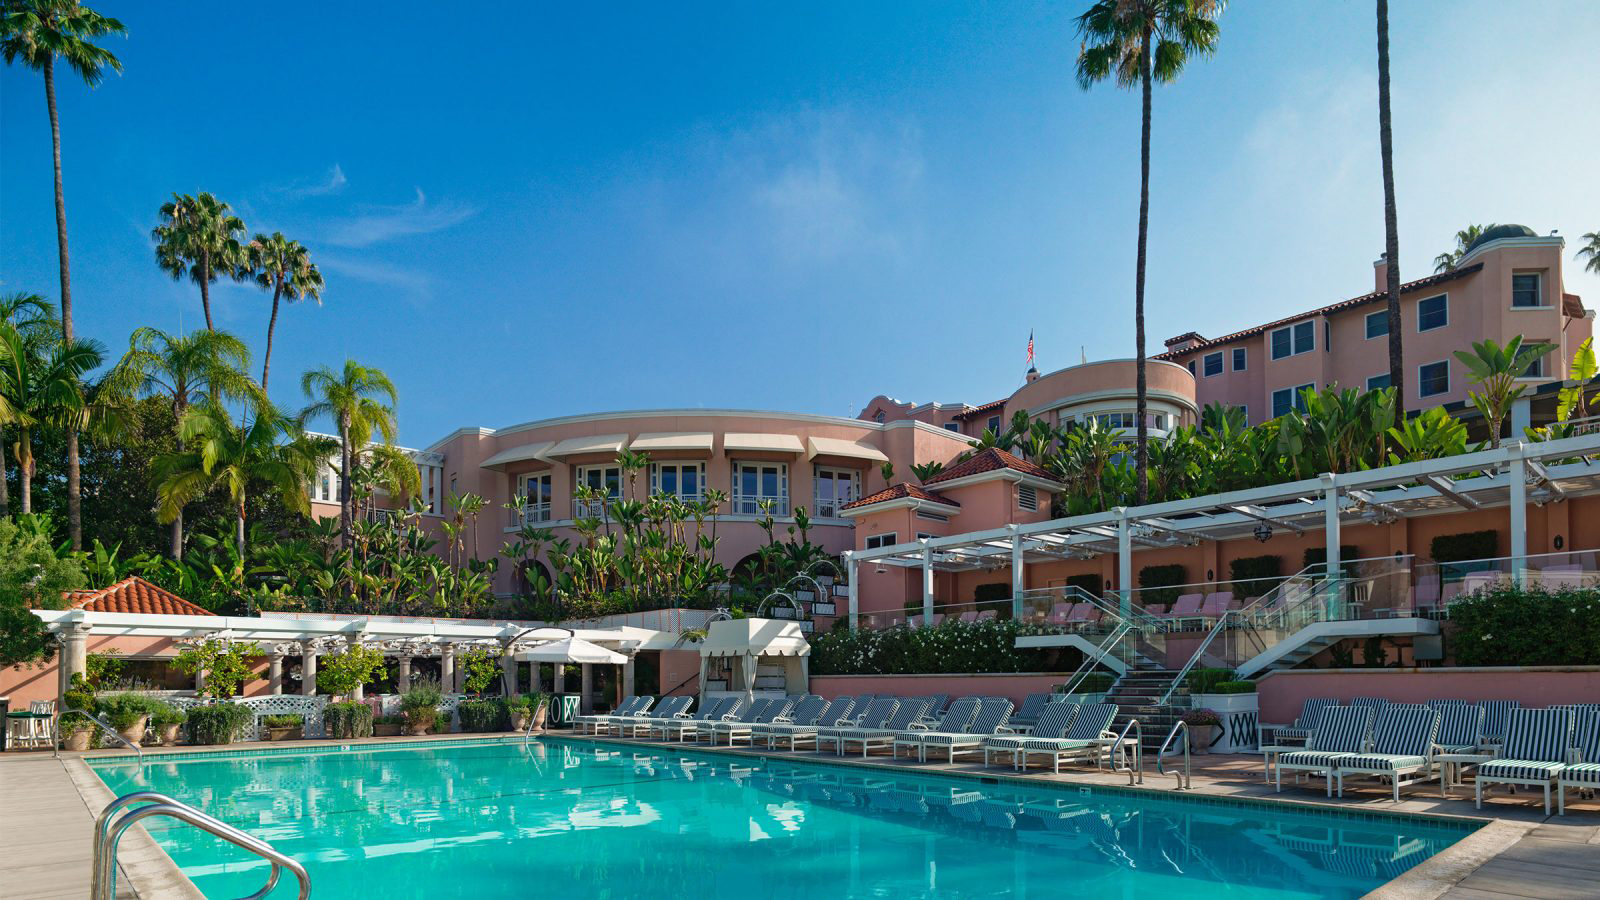 Stay: The Beverly Hills Hotel